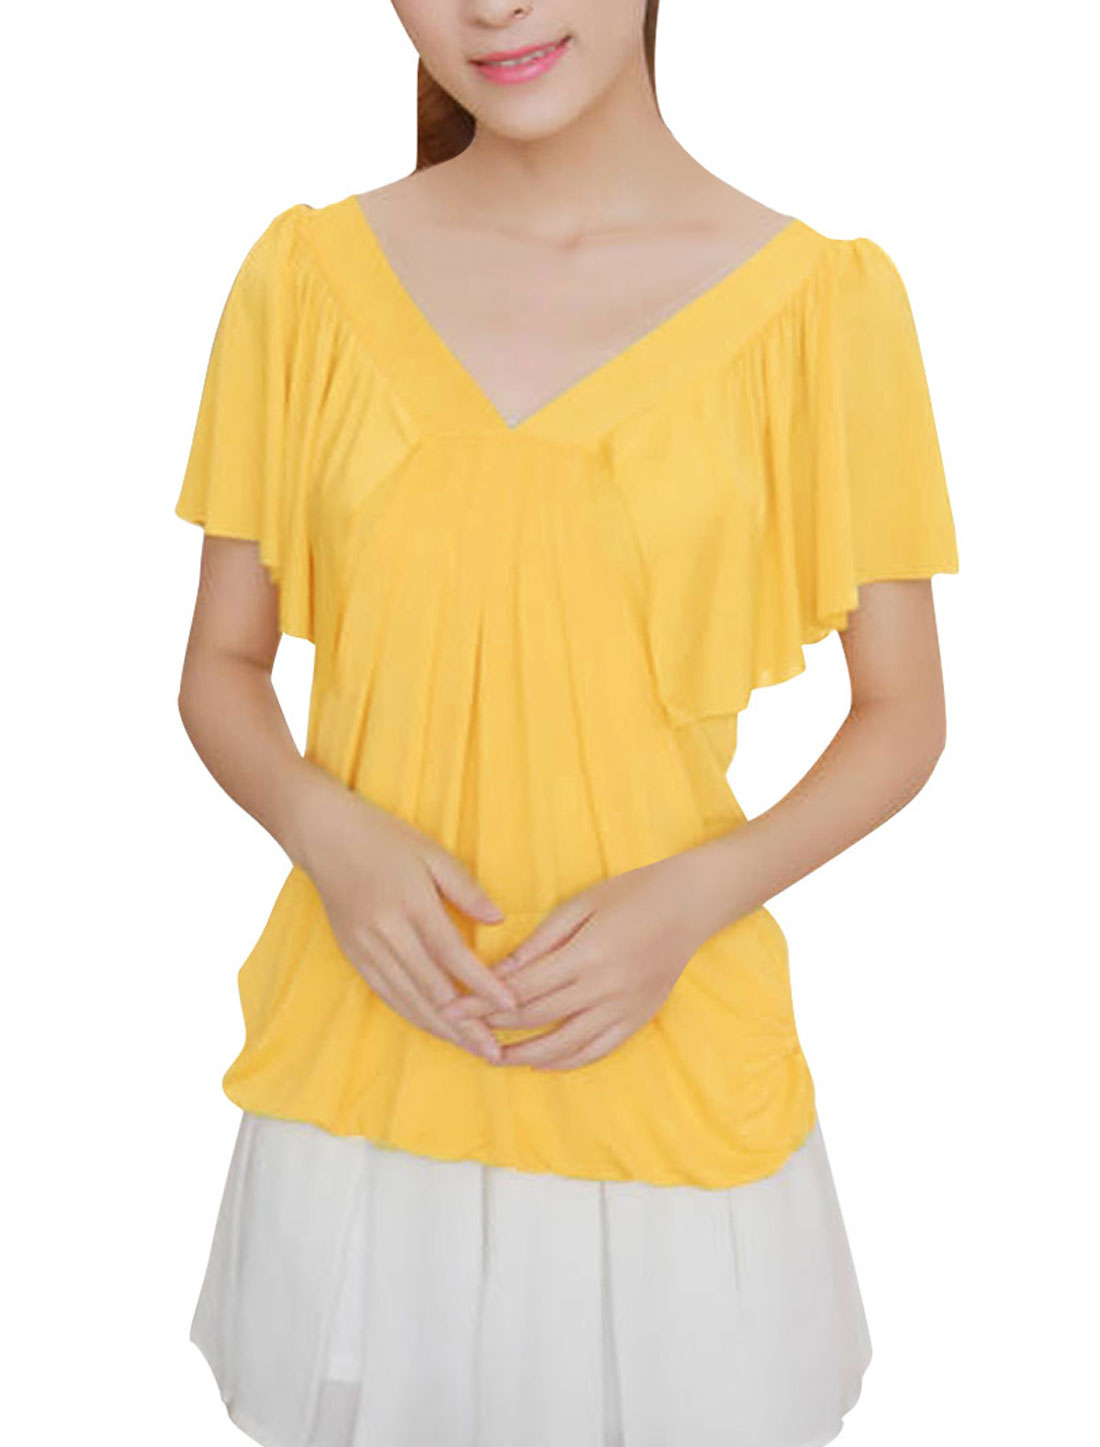 Women Stylish Light Yellow Solid Color Ruffles Sleeve Casual Shirt XS